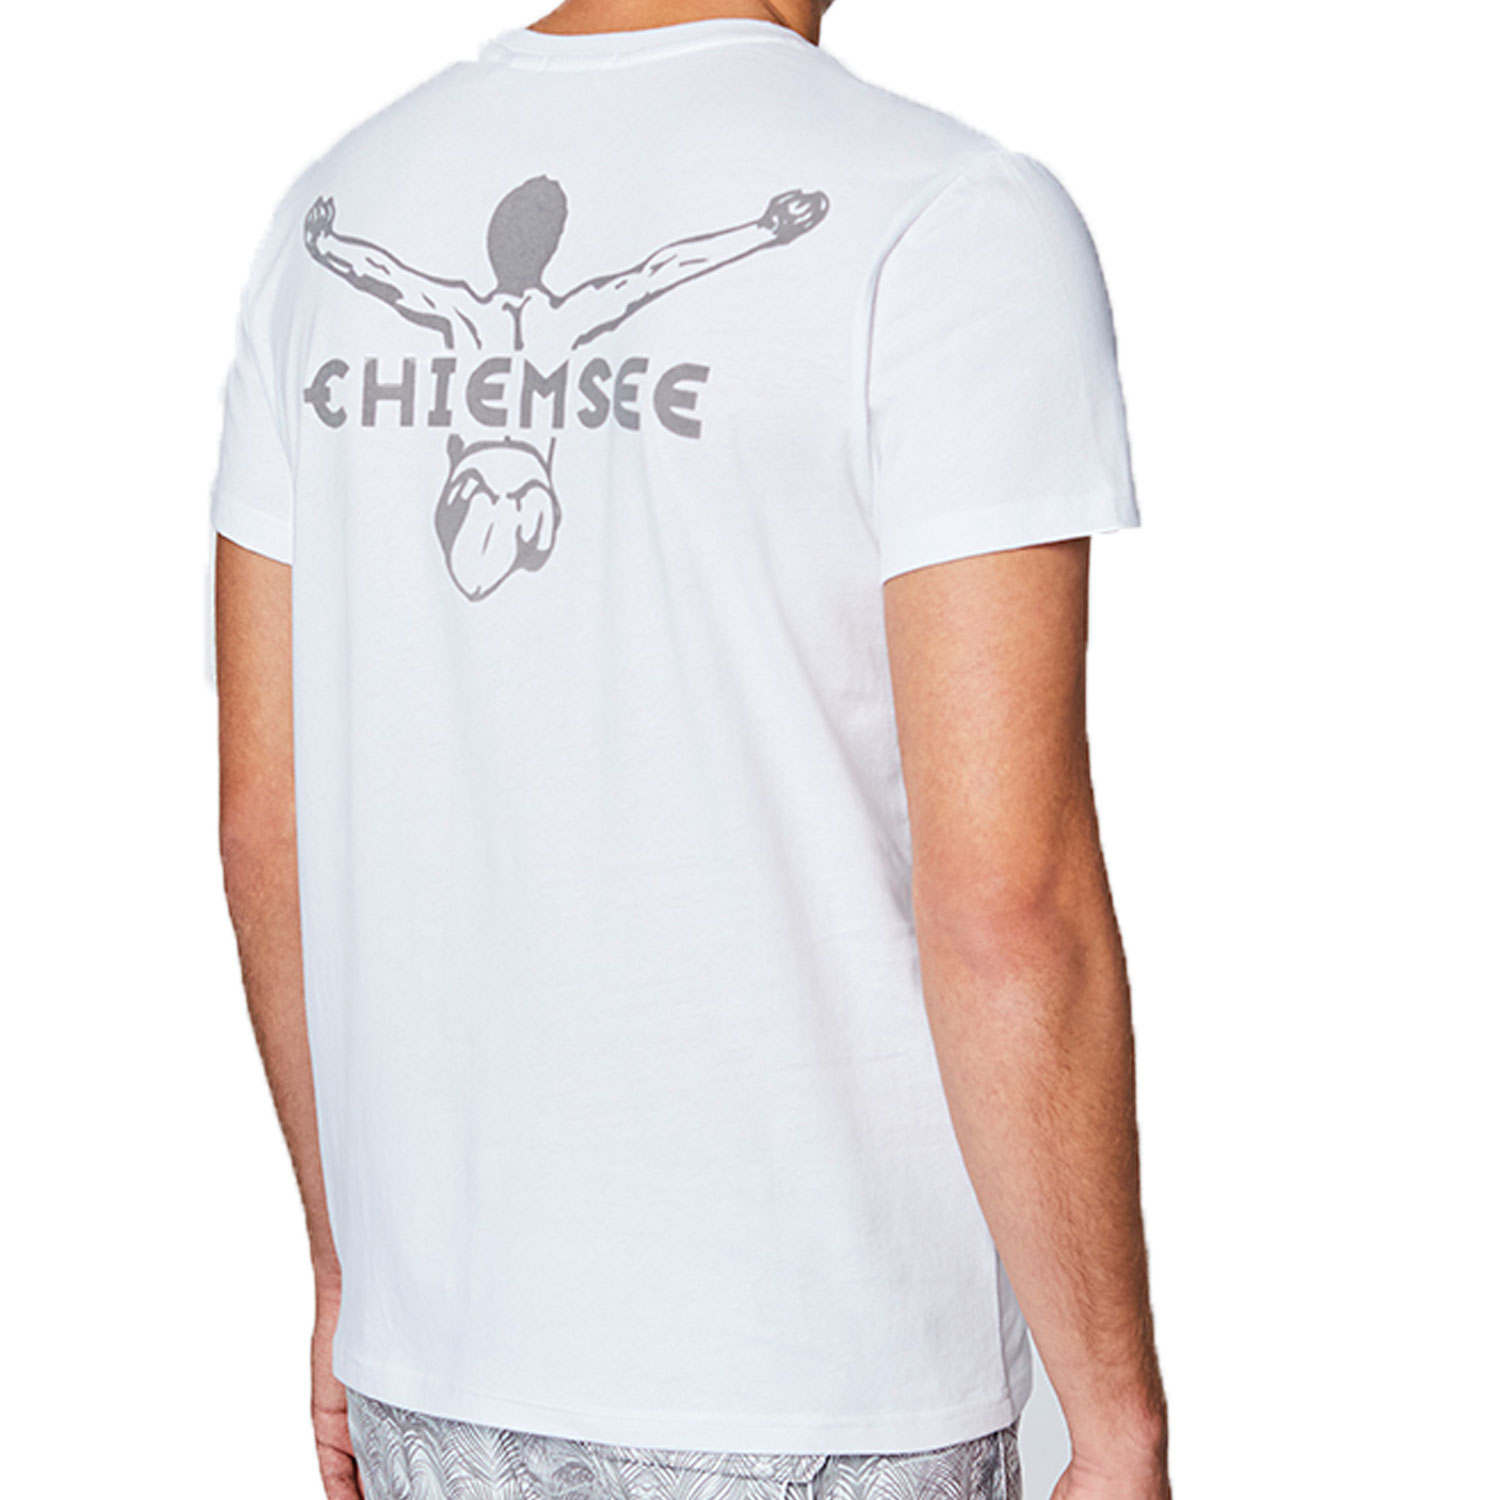 Chiemsee Herren Shirt Manhatten, T-Shirt, 2051014 – Bild 19